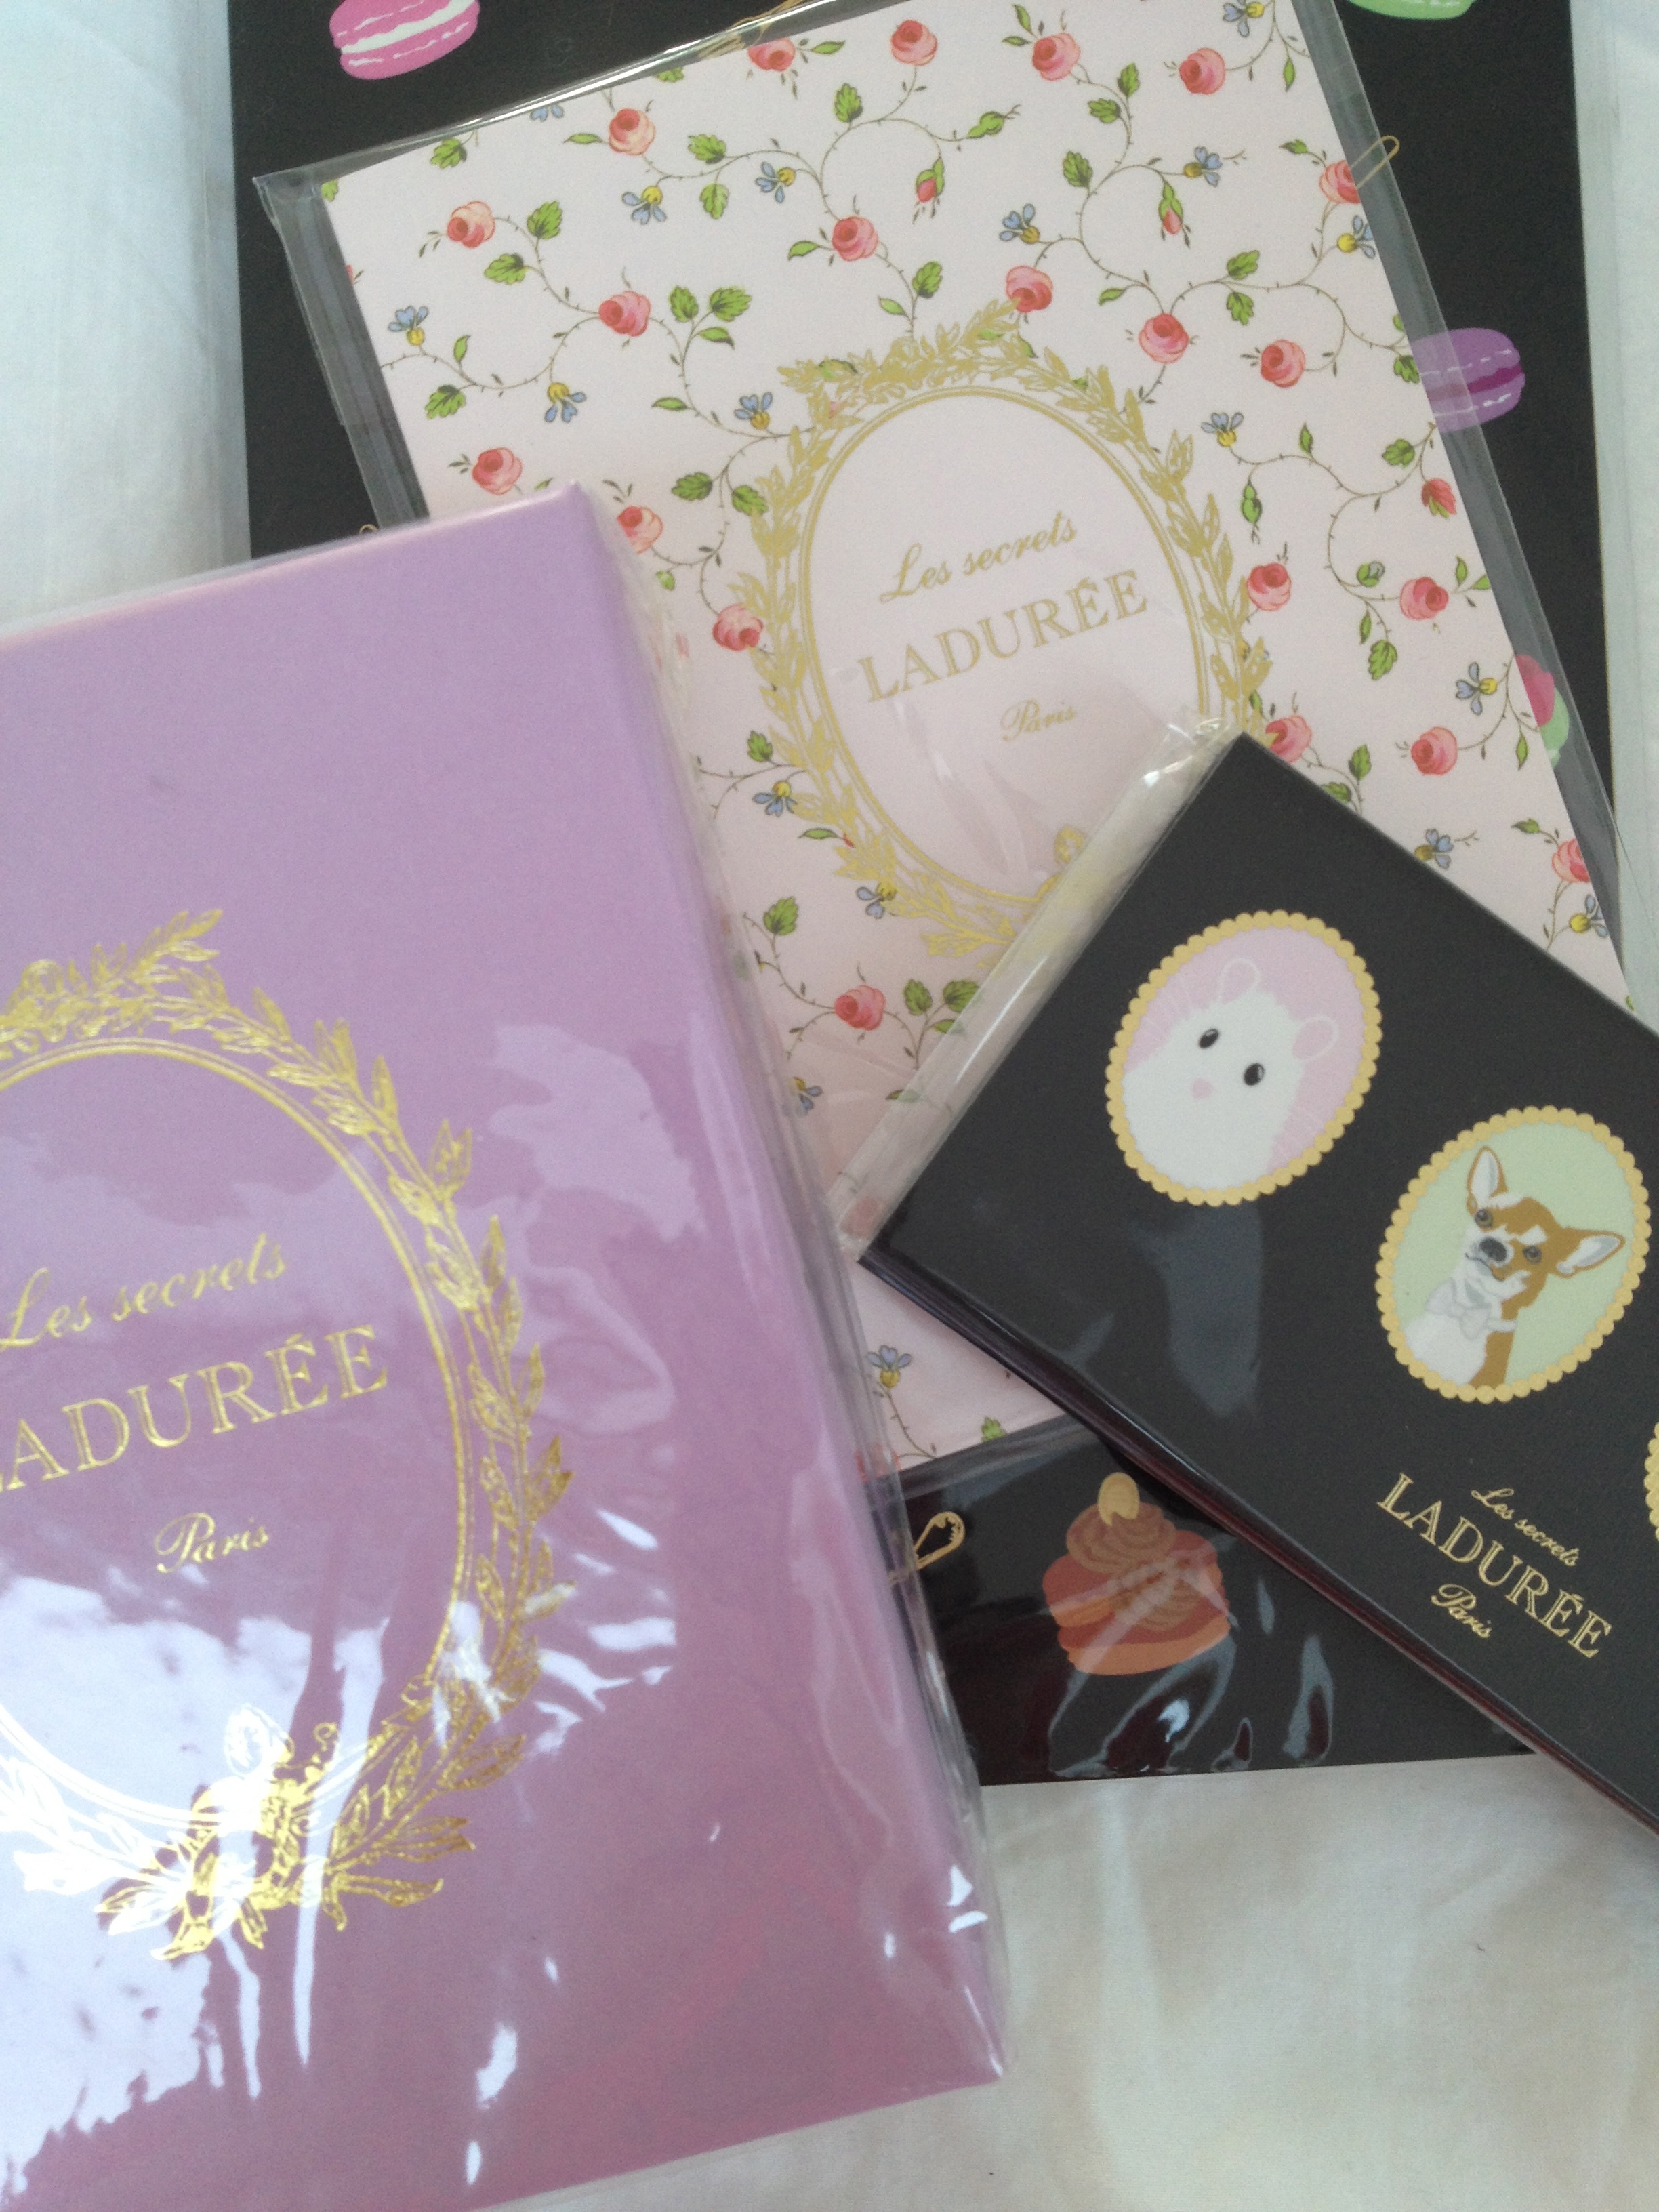 Lauduree now make stationery and keyrings. Who knew?